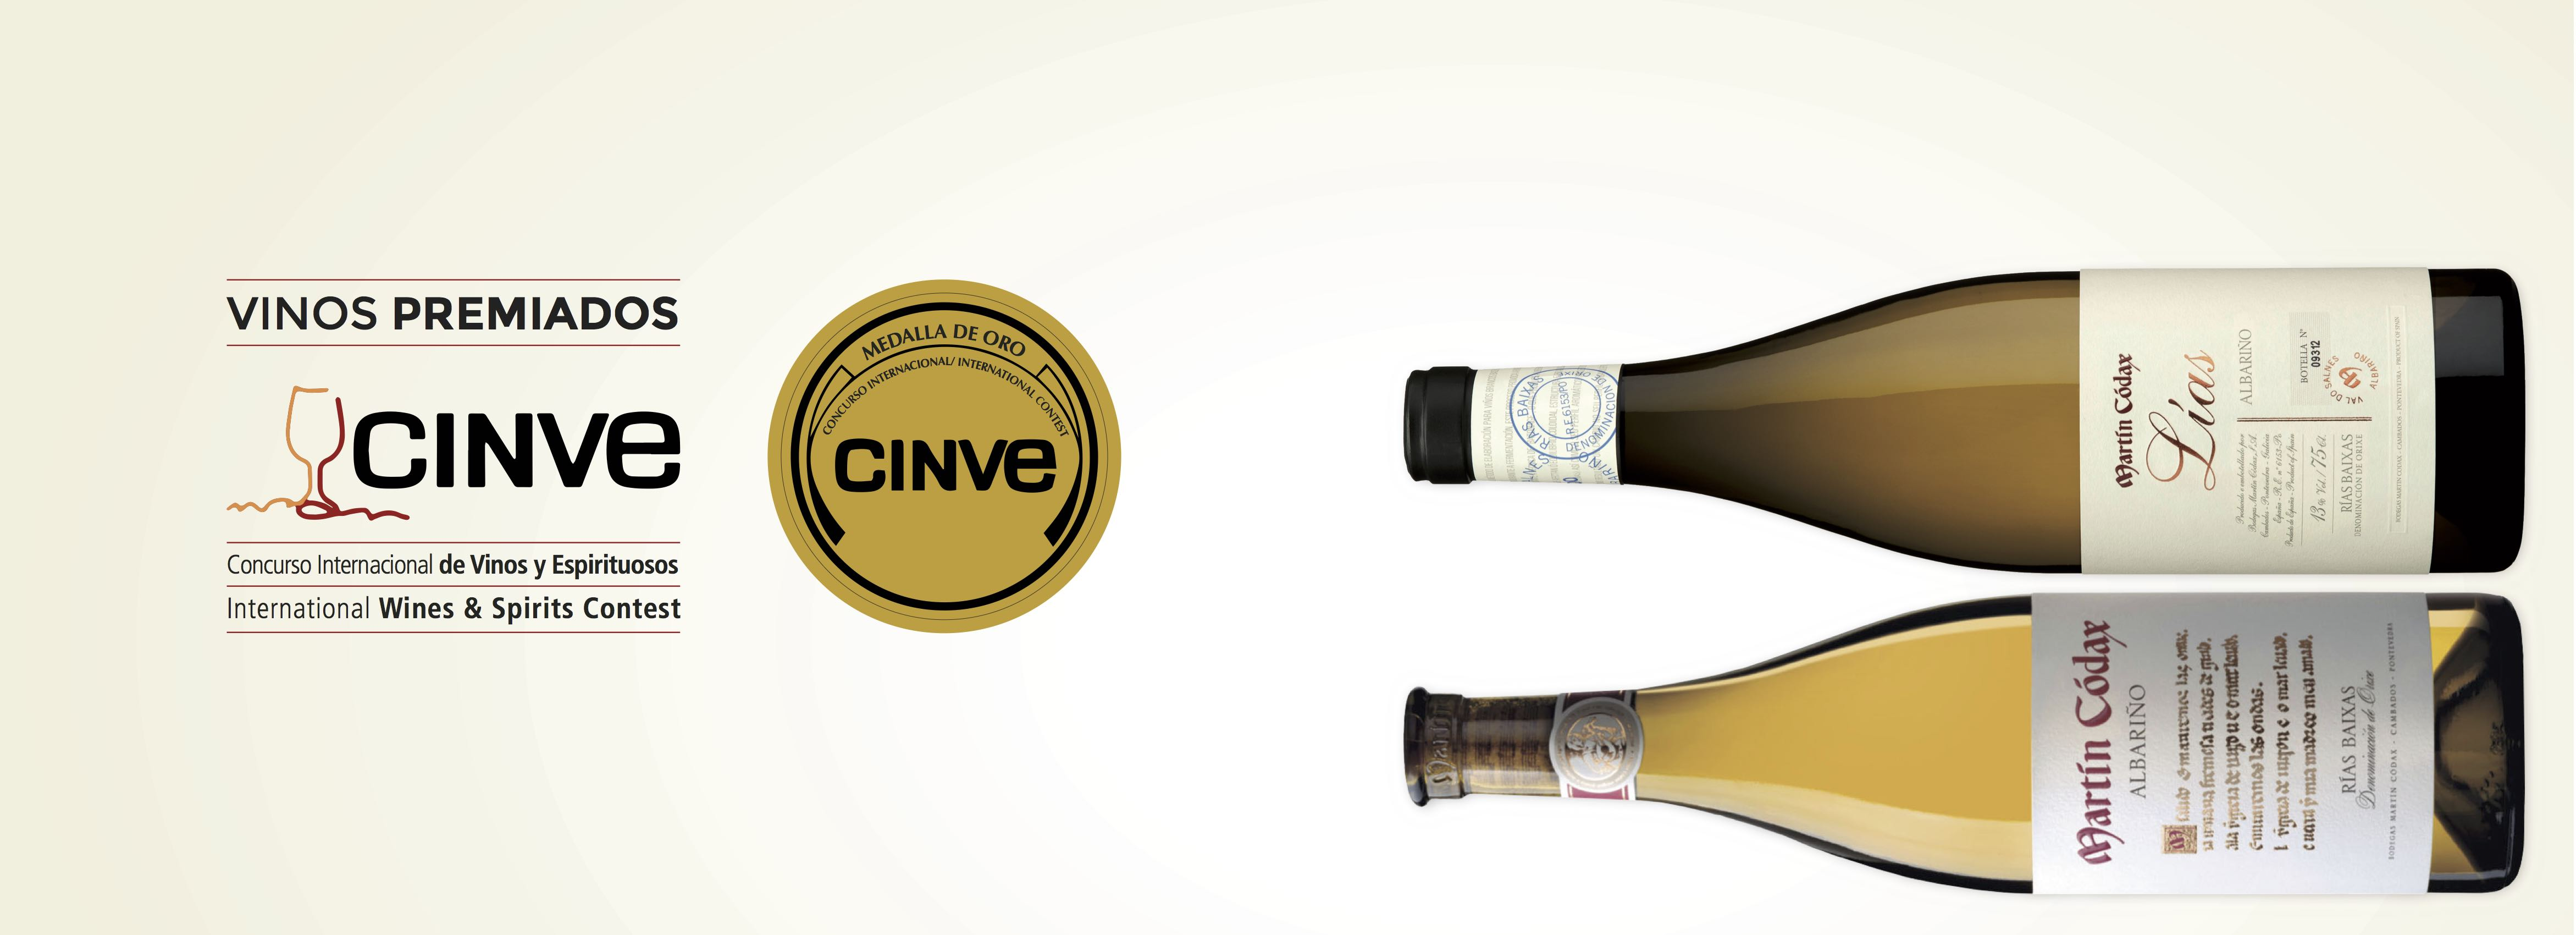 Double gold medal in Cinve 2017